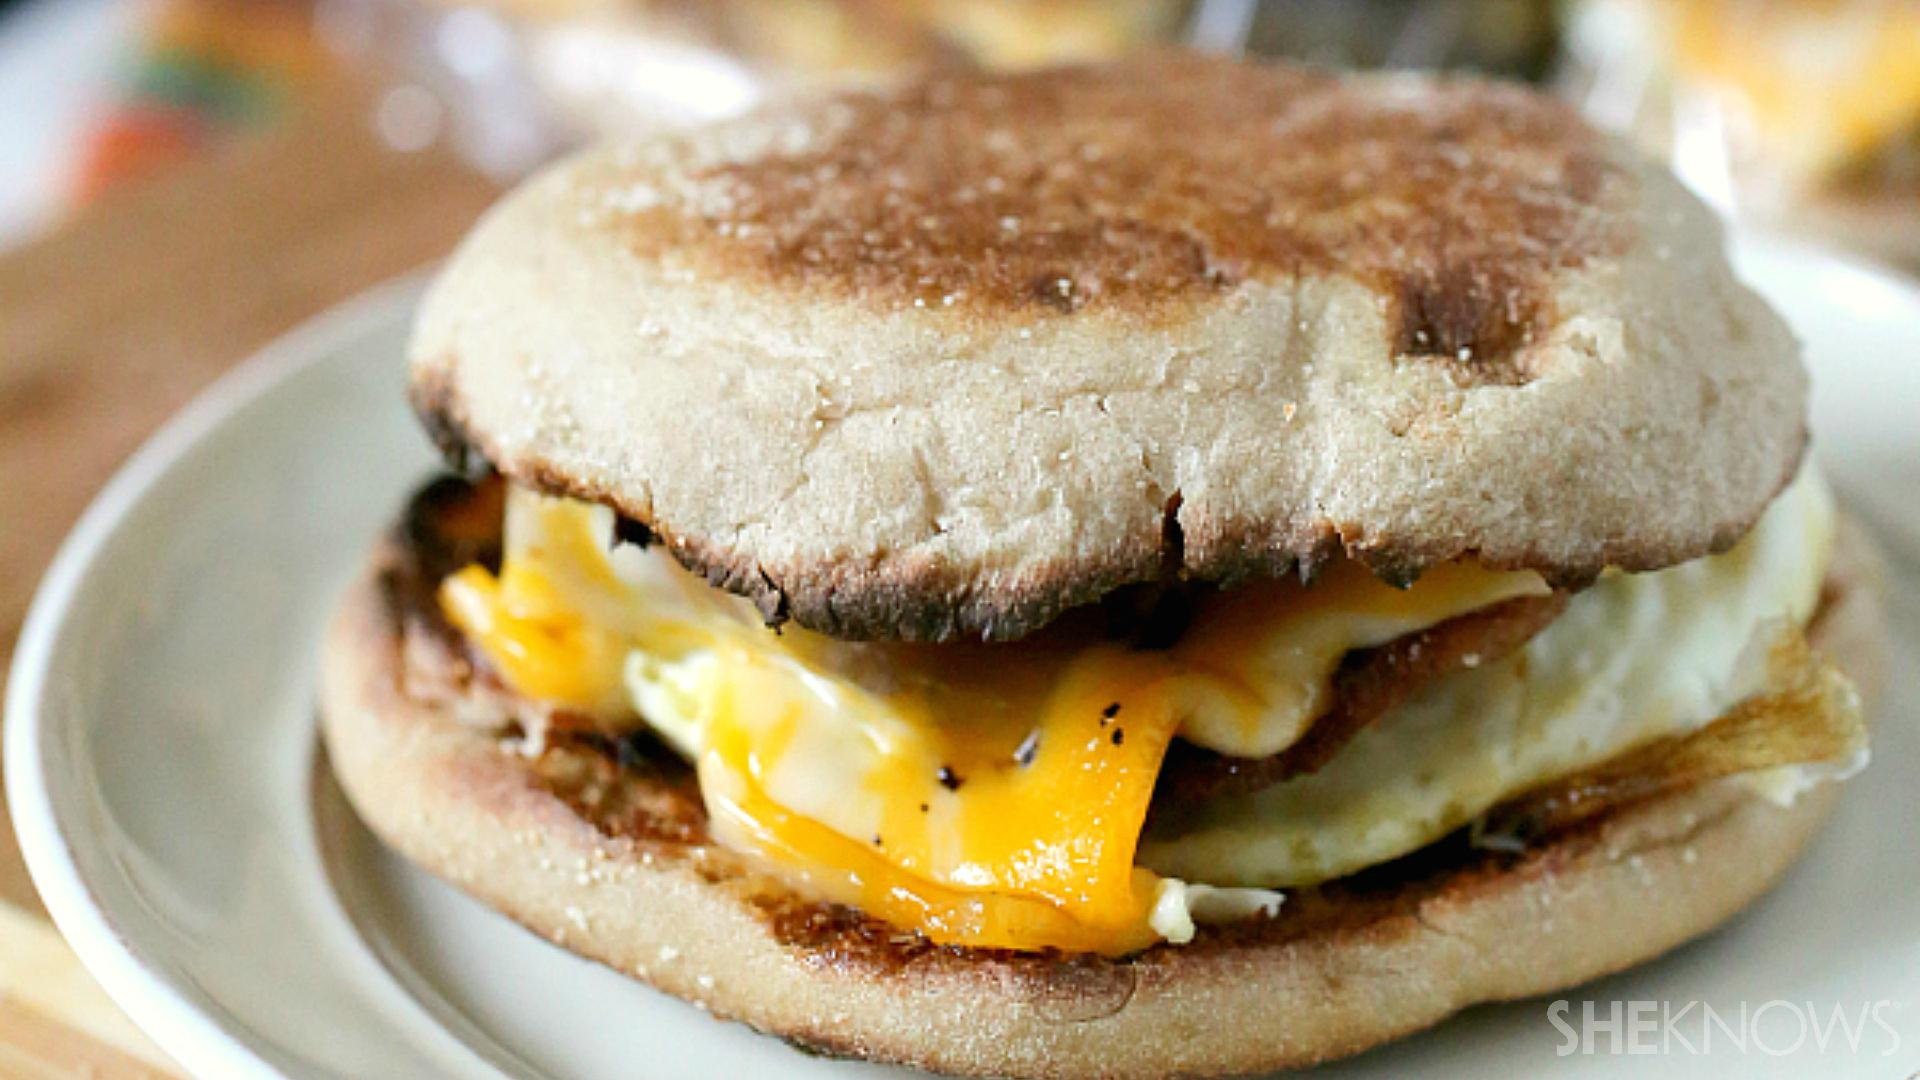 Make-ahead freezer meals: Easy egg sandwiches for breakfast